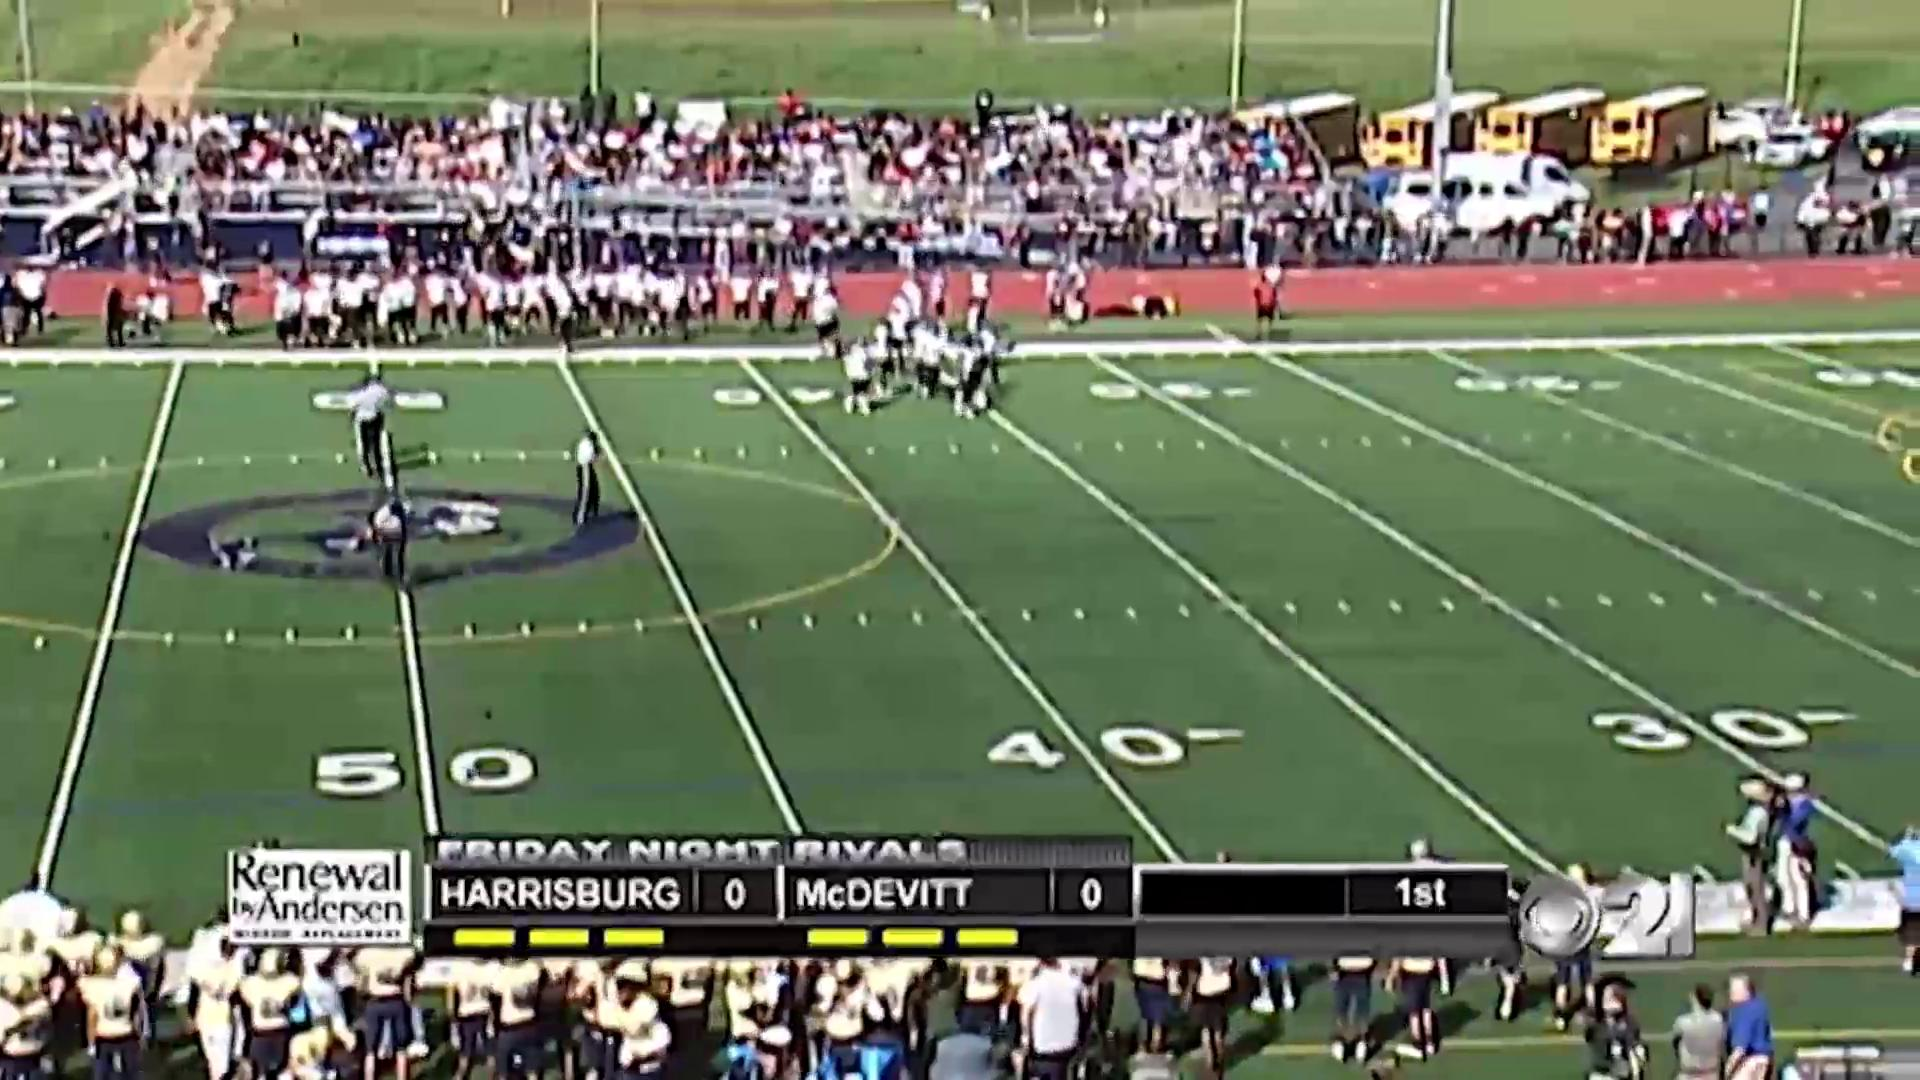 Week 1 FNR Game: Harrisburg at McDevitt